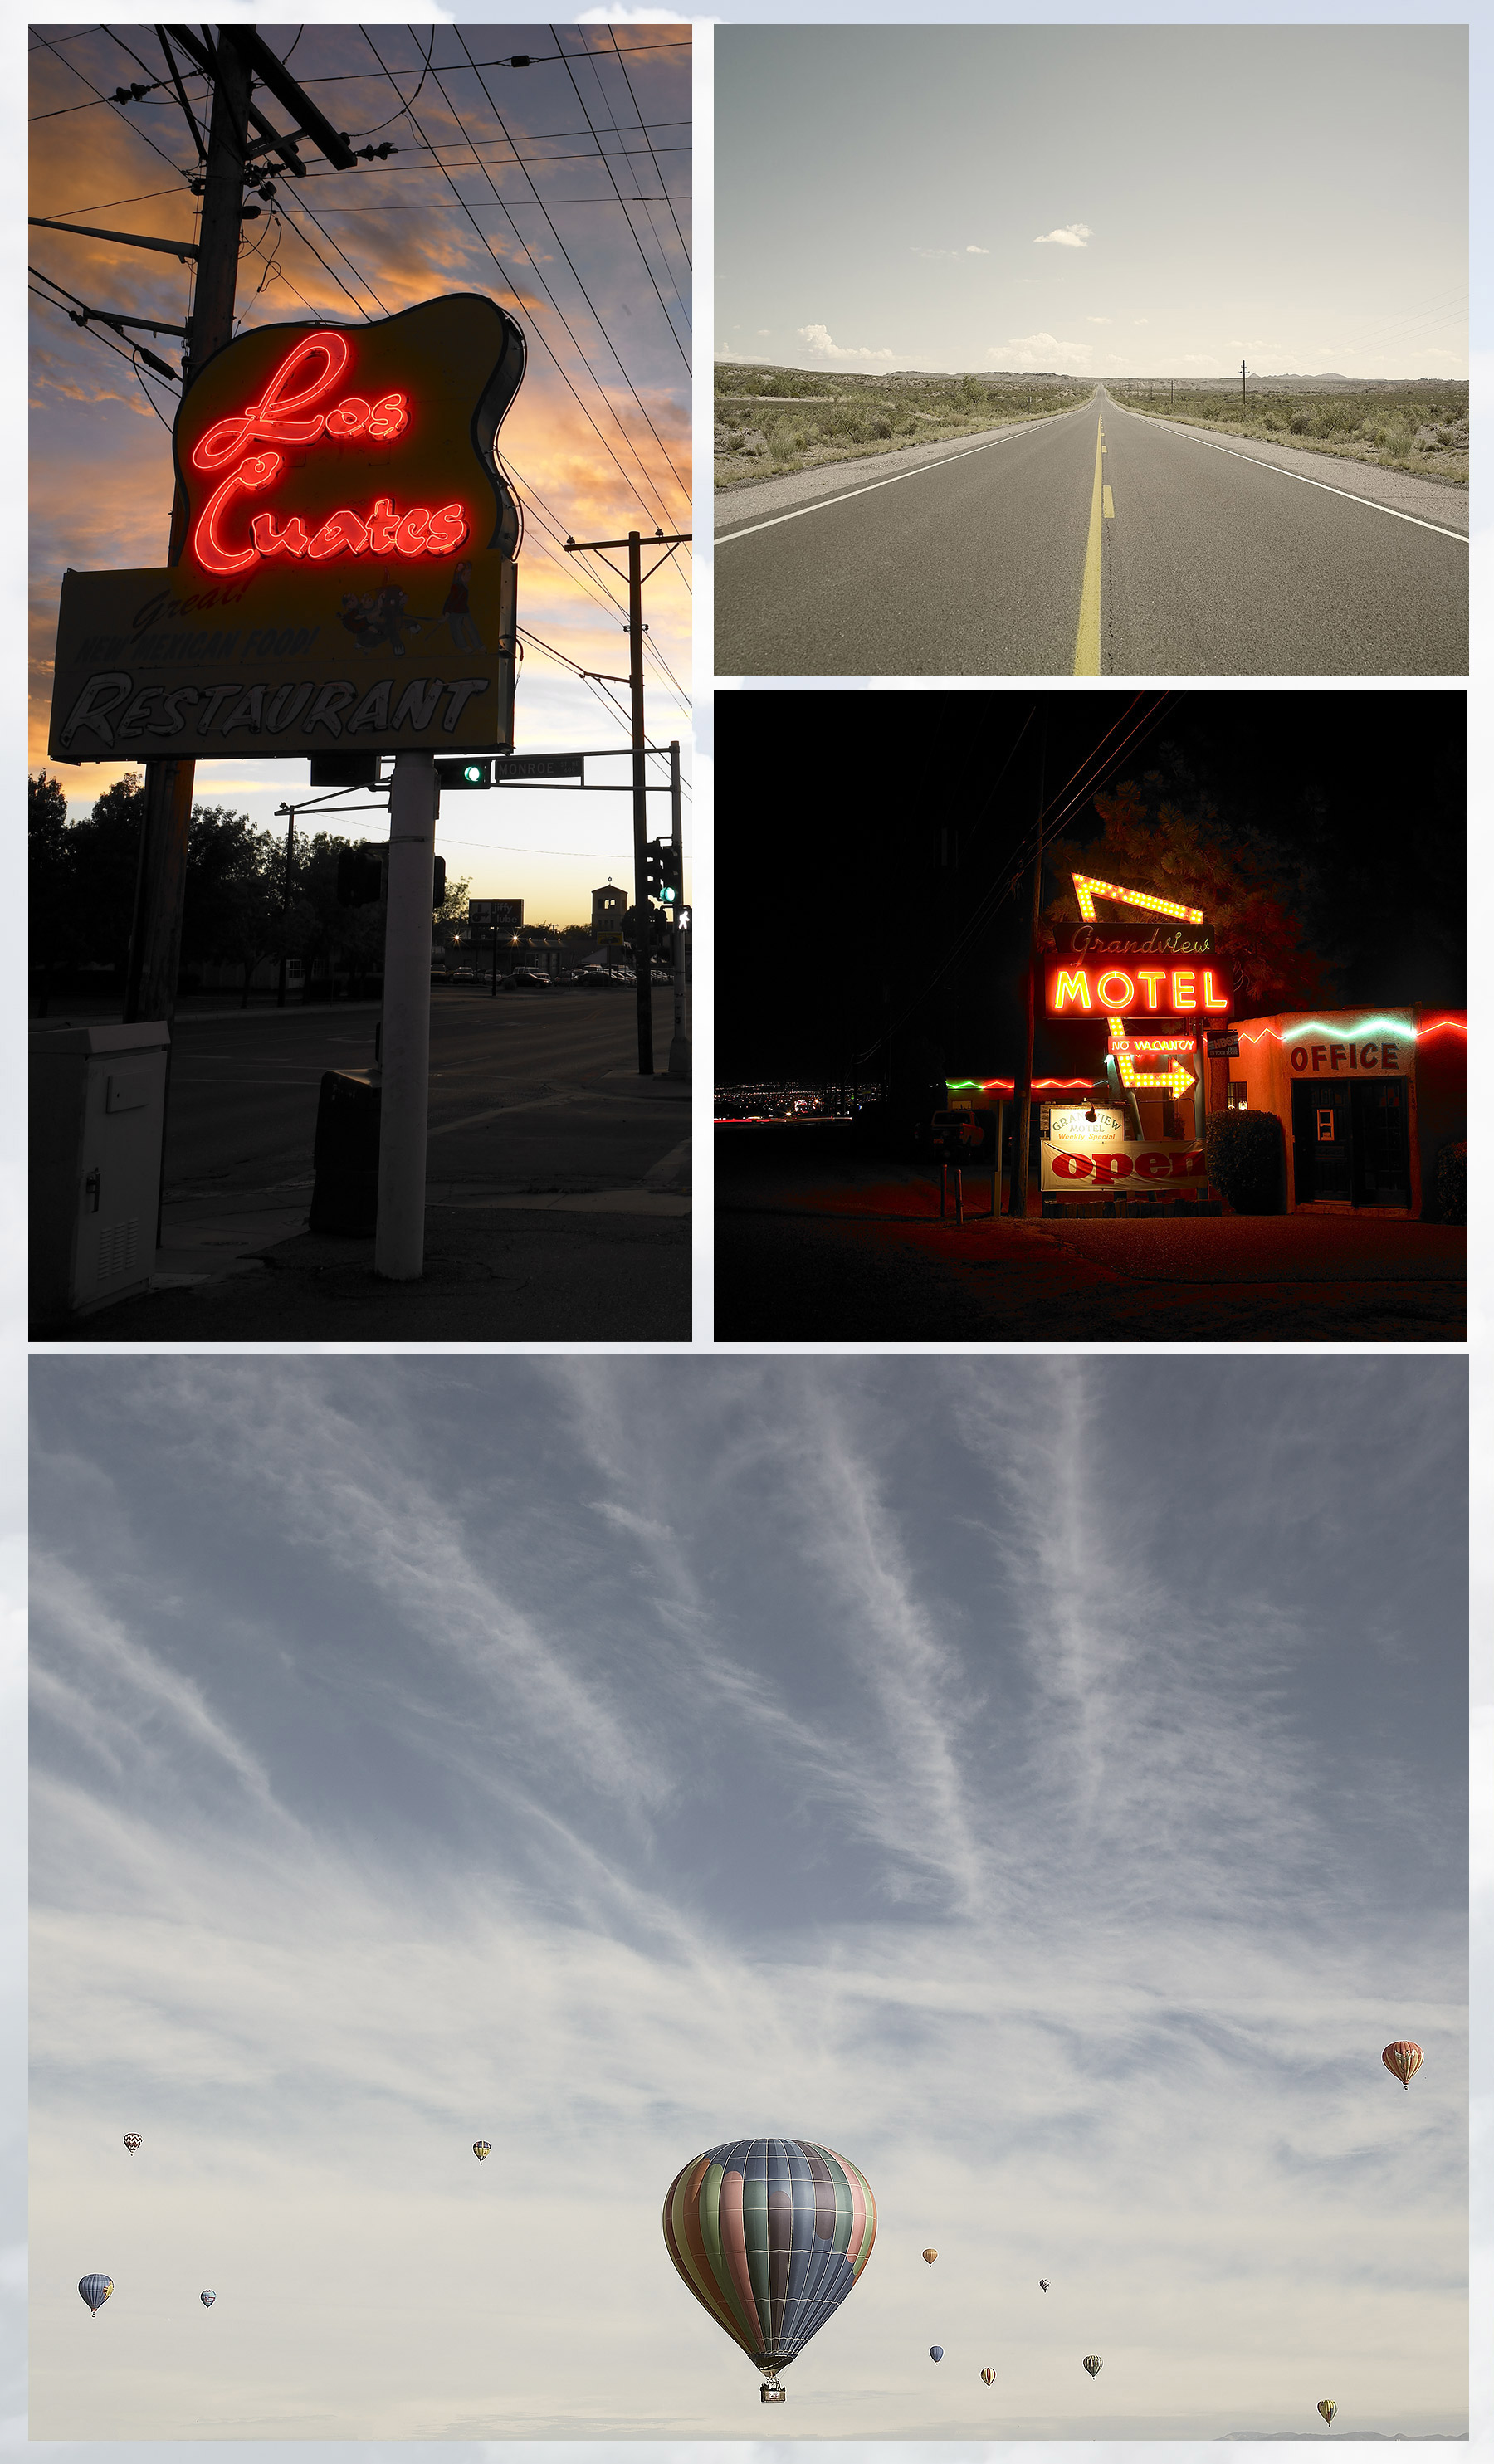 NEON SIGNS, DESERTED HIGHWAYS, ALBUQUERQUE BALLOON FESTIVAL, RAINER BEHRENS, DENISE BEHRENS, DENISE BEHRENS PHOTOGRAPHY, THE BEHRENS NYC